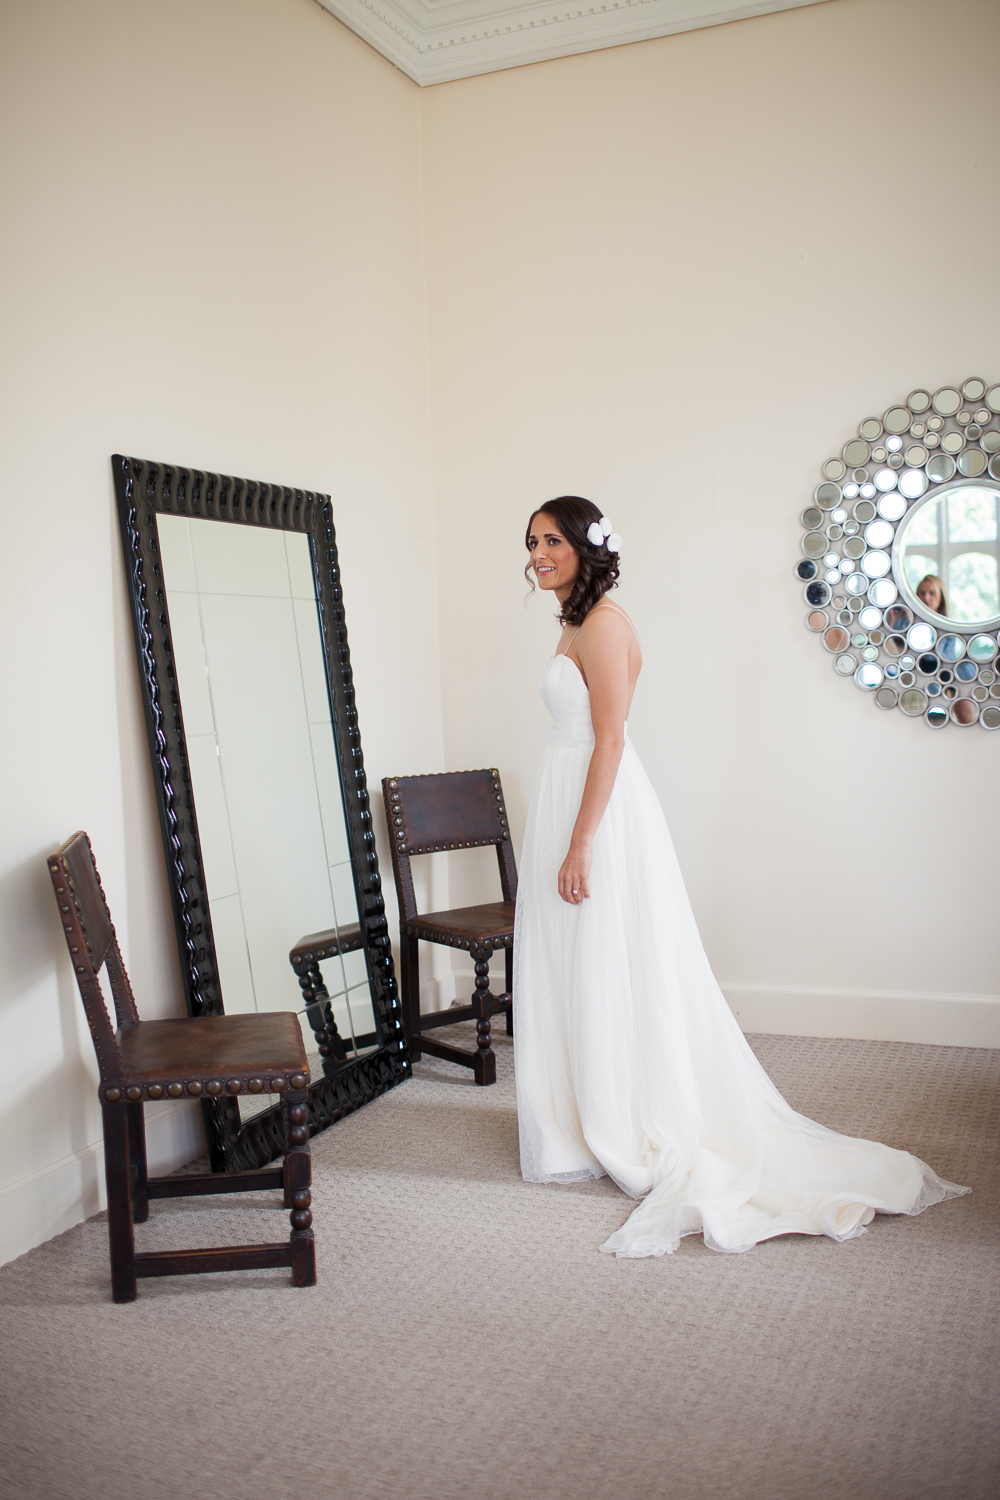 Hempstead House Wedding | Hempstead House Wedding Sands Point Long Island Ny Lvr Events